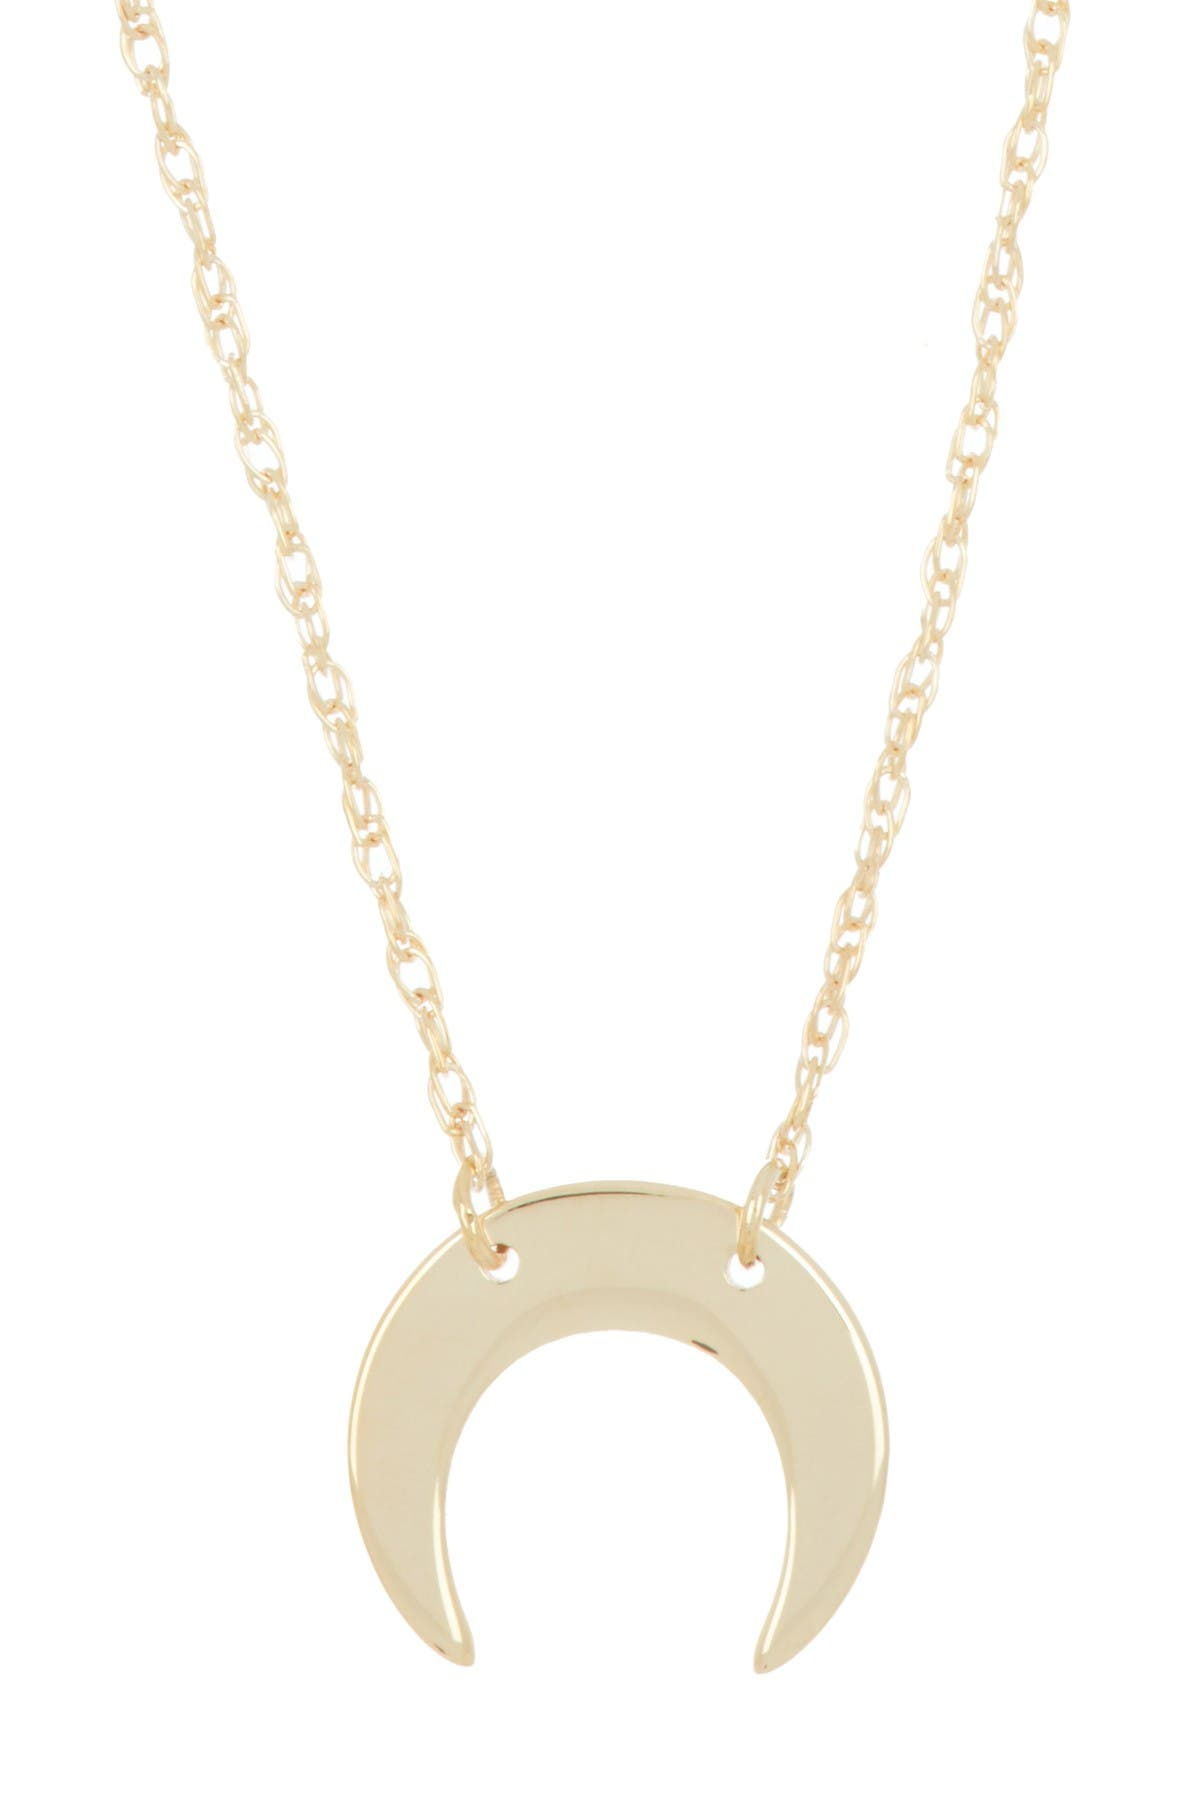 Image of Candela 10K Yellow Gold Crescent Moon Pendant Necklace